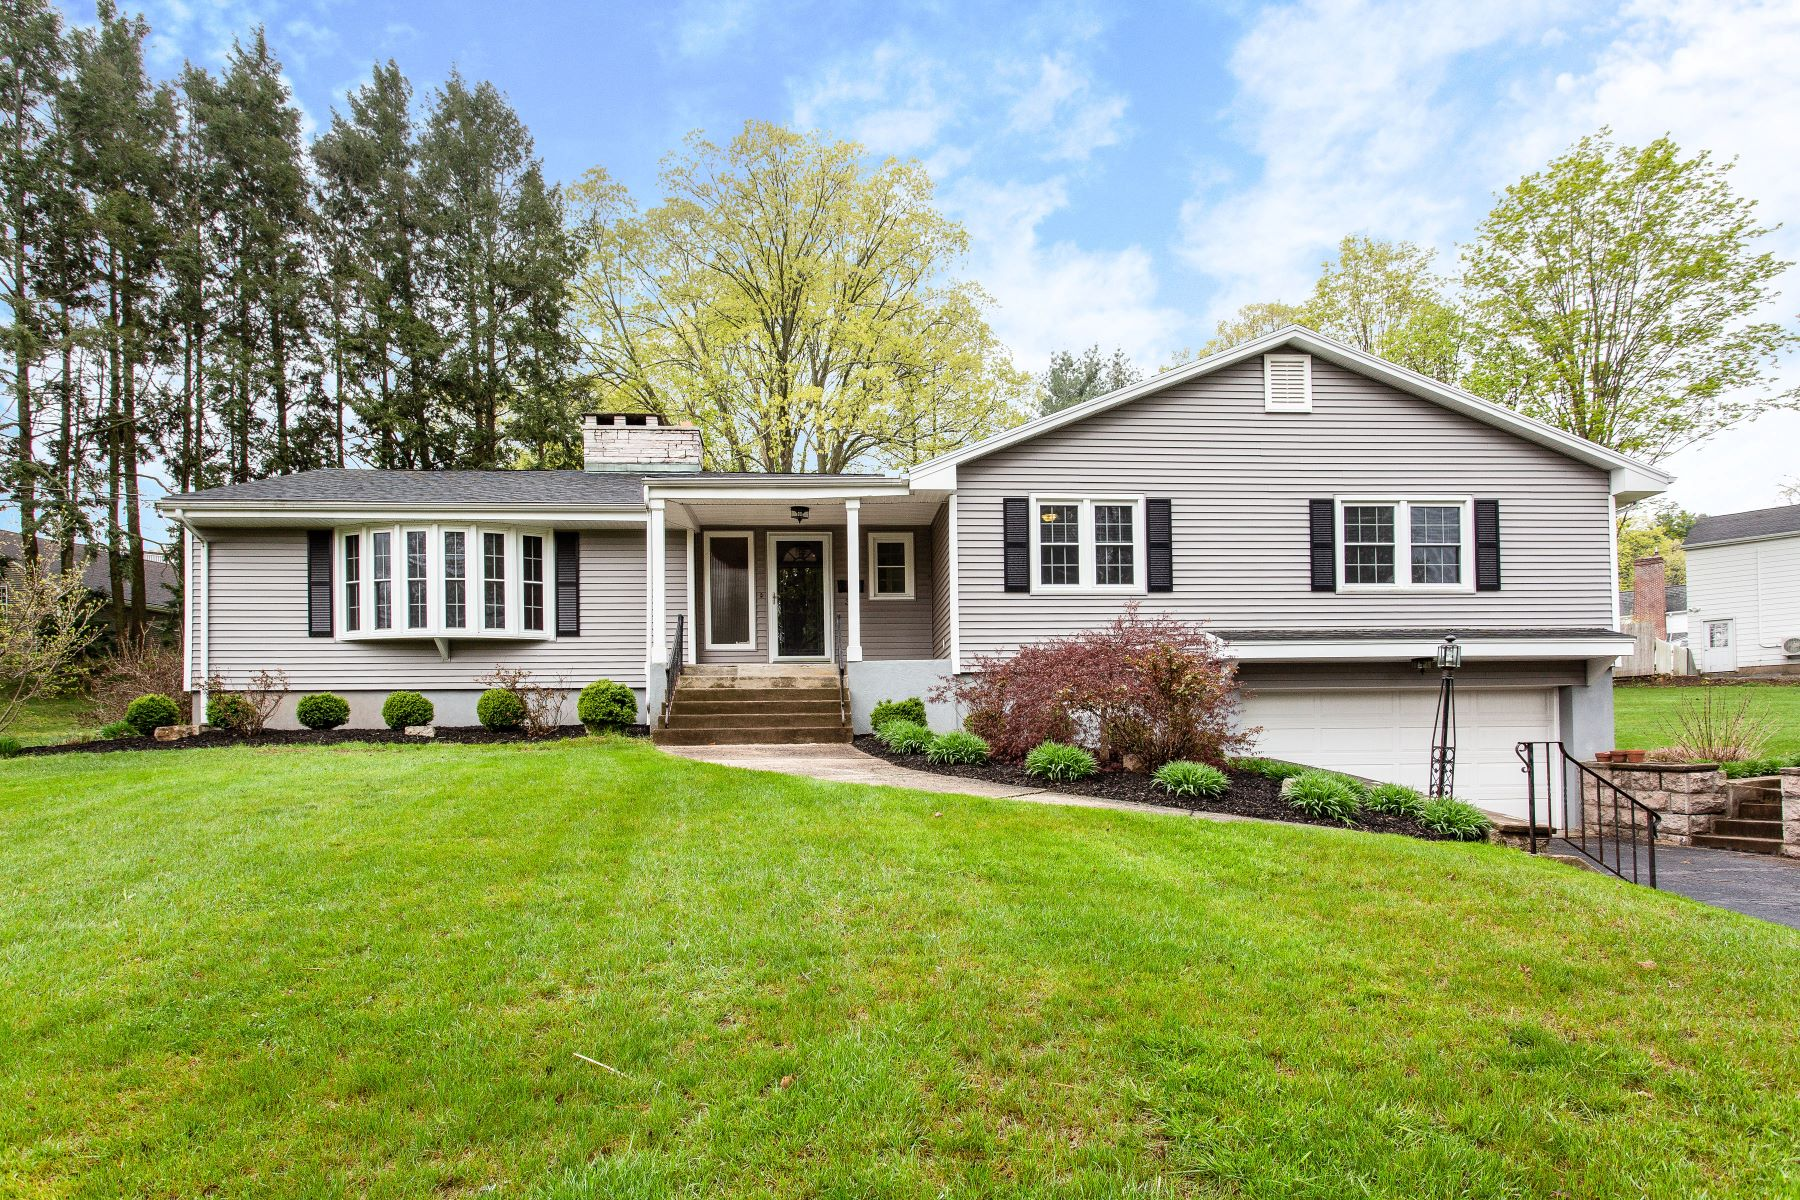 single family homes for Sale at This Sprawling Ranch Has so Much to Offer! 33 York Road, New Britain, Connecticut 06052 United States